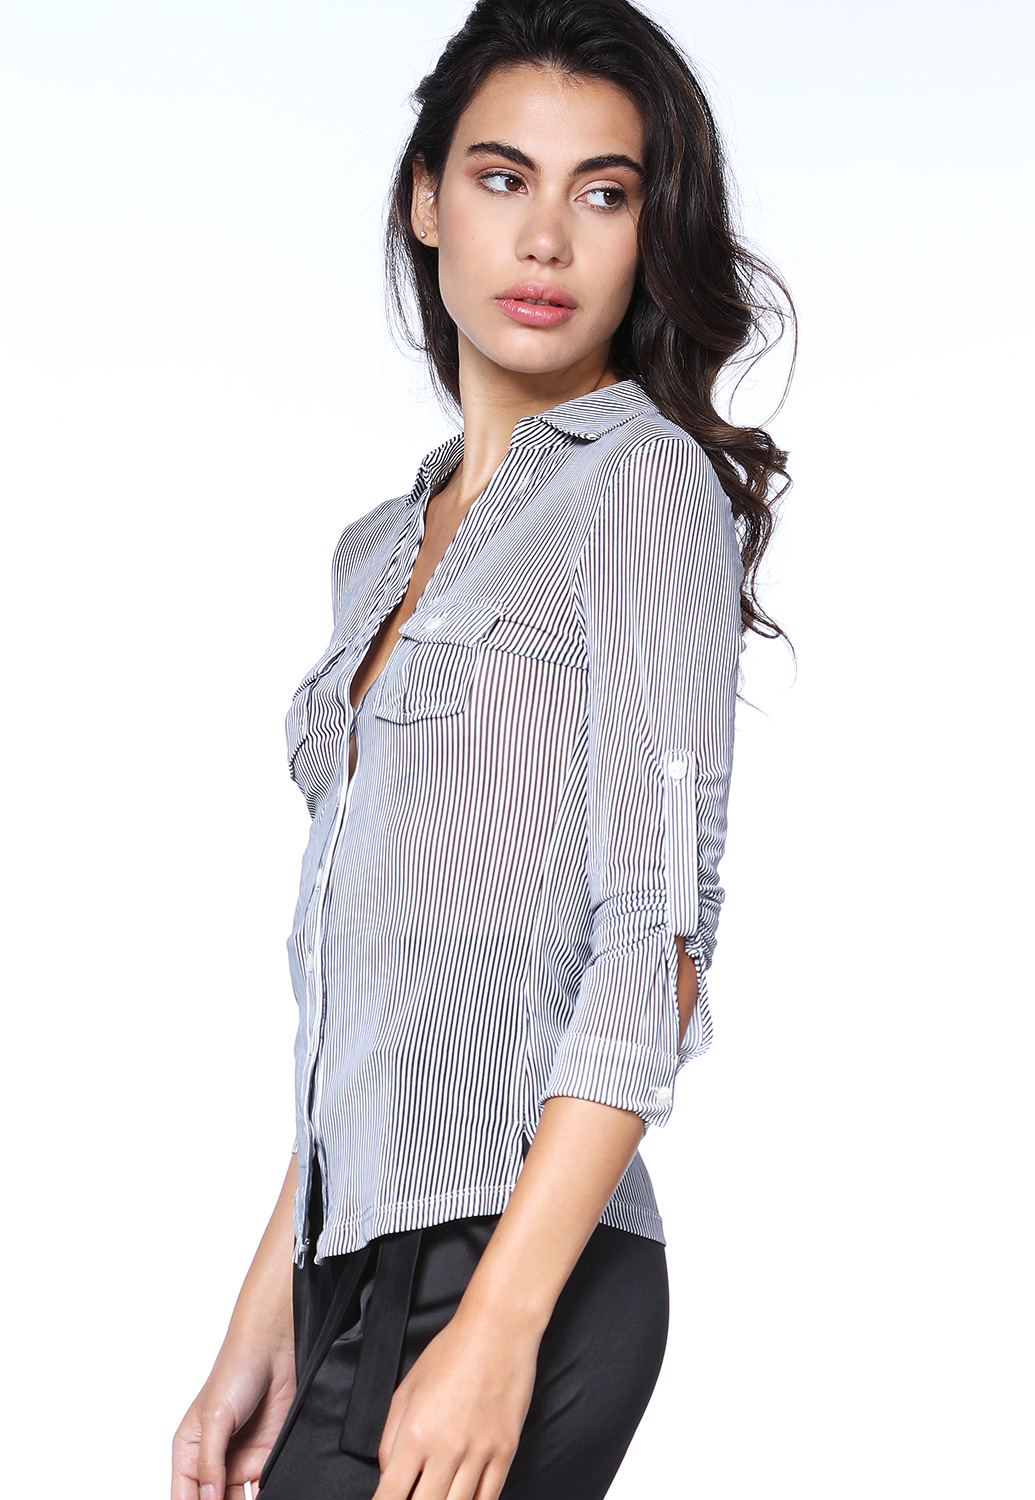 Sheer Pinstriped Dressy Top